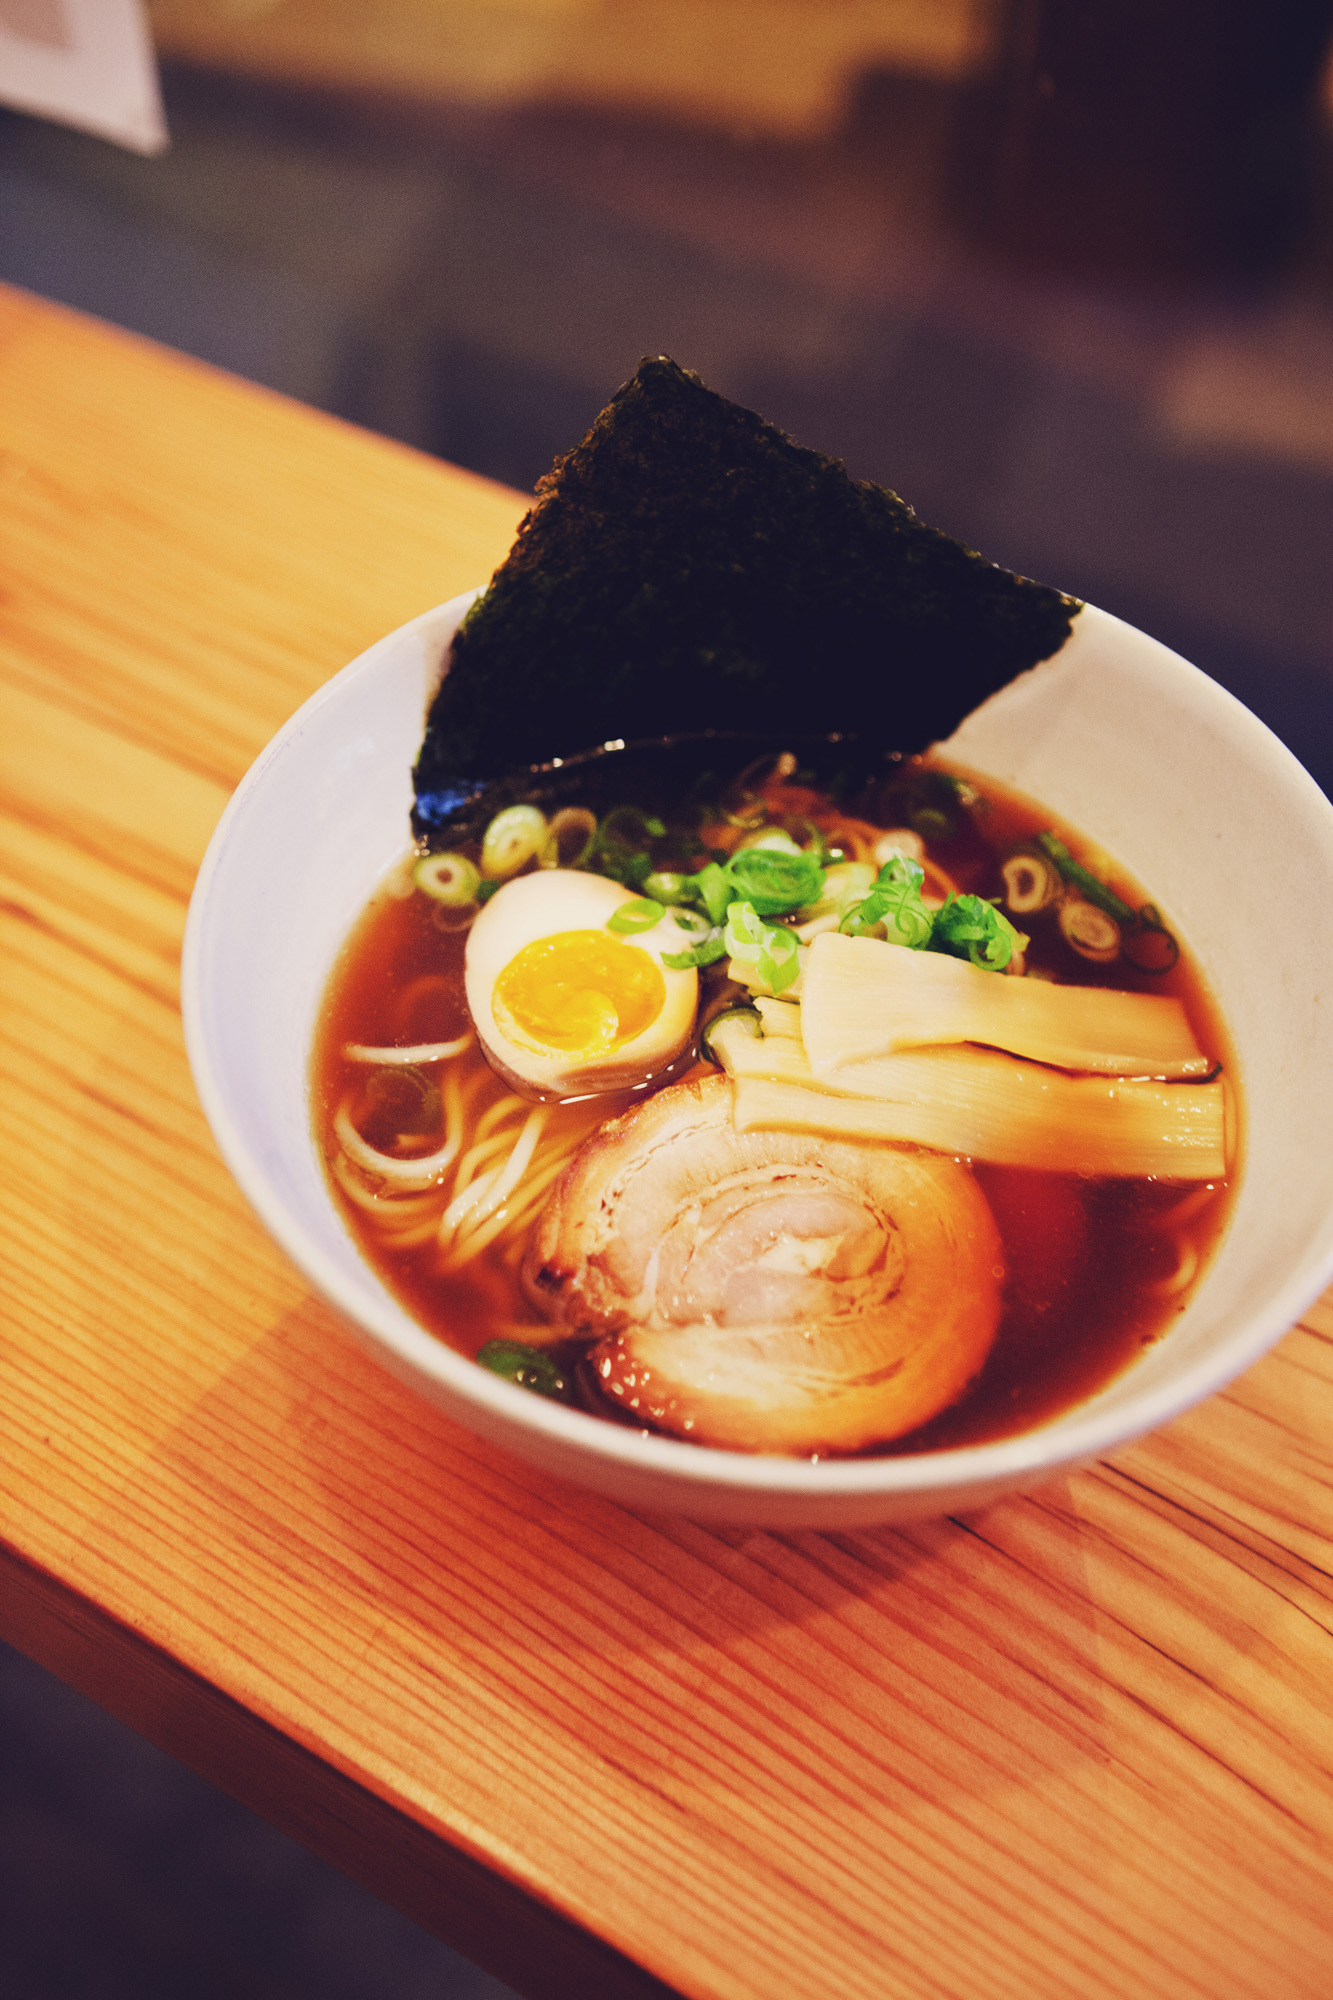 For The Dojo Ramen Bar